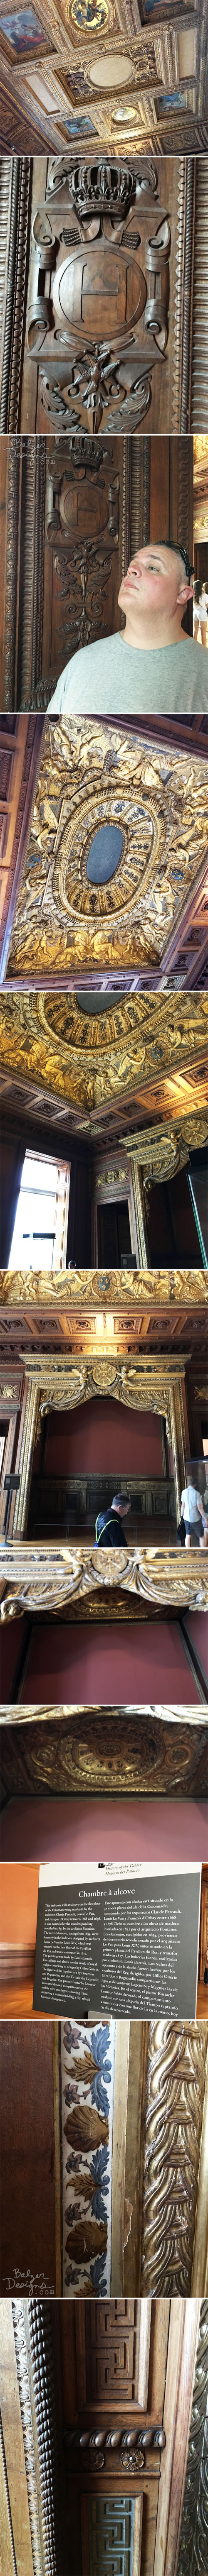 From the Balzer Designs Blog: Louvre: Part One